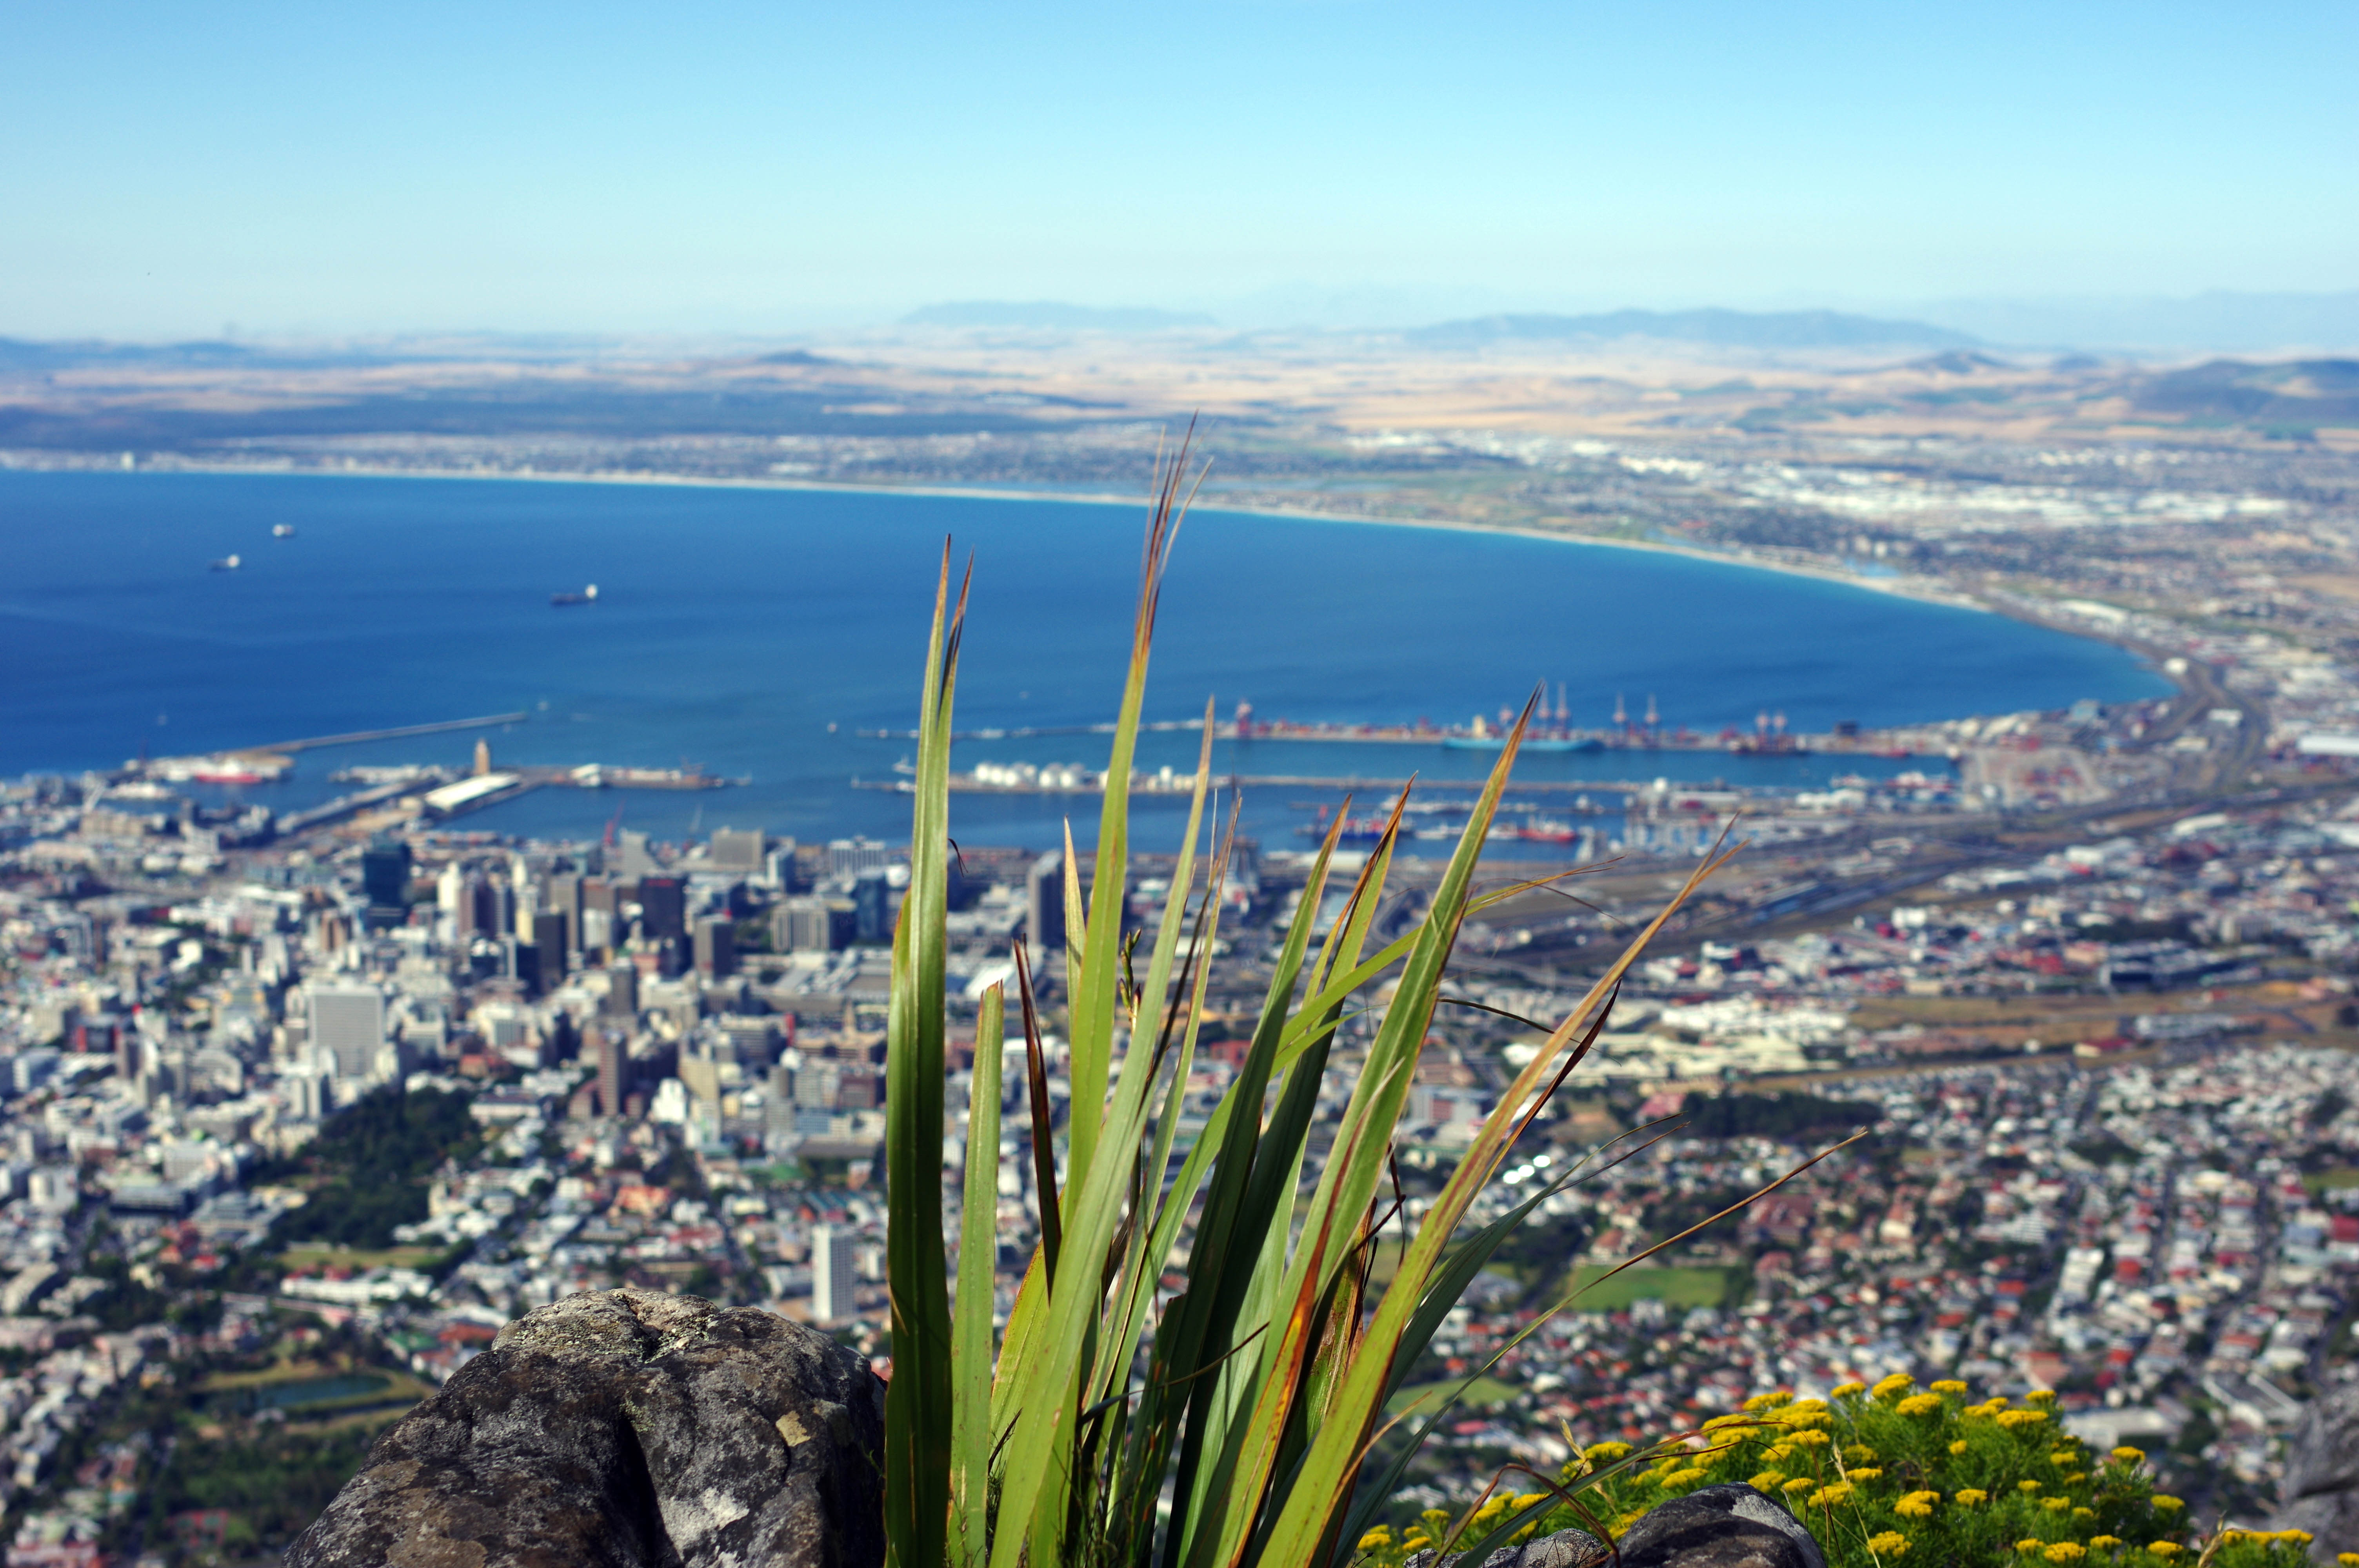 171122_CT_Table mountain5